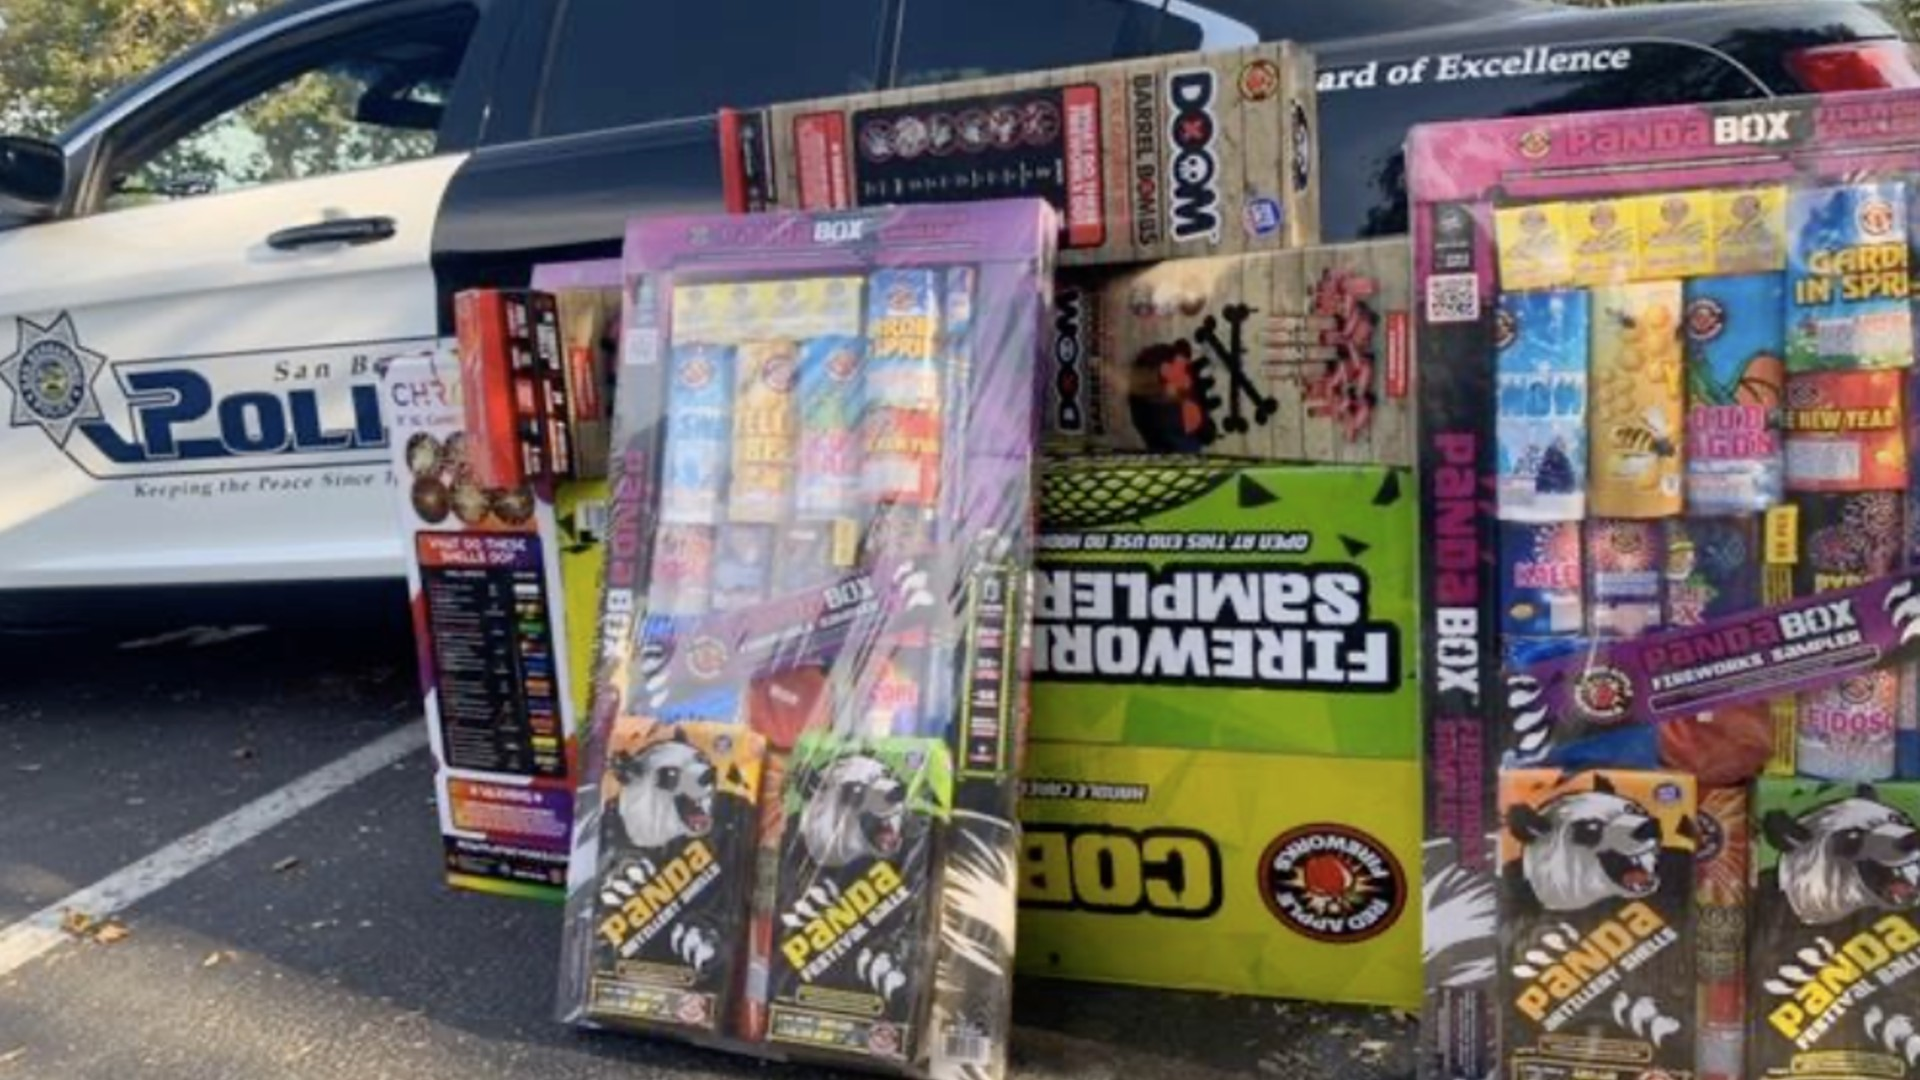 Some of the fireworks seized by the San Bernardino Police Department are seen in an image posted on its Facebook page.